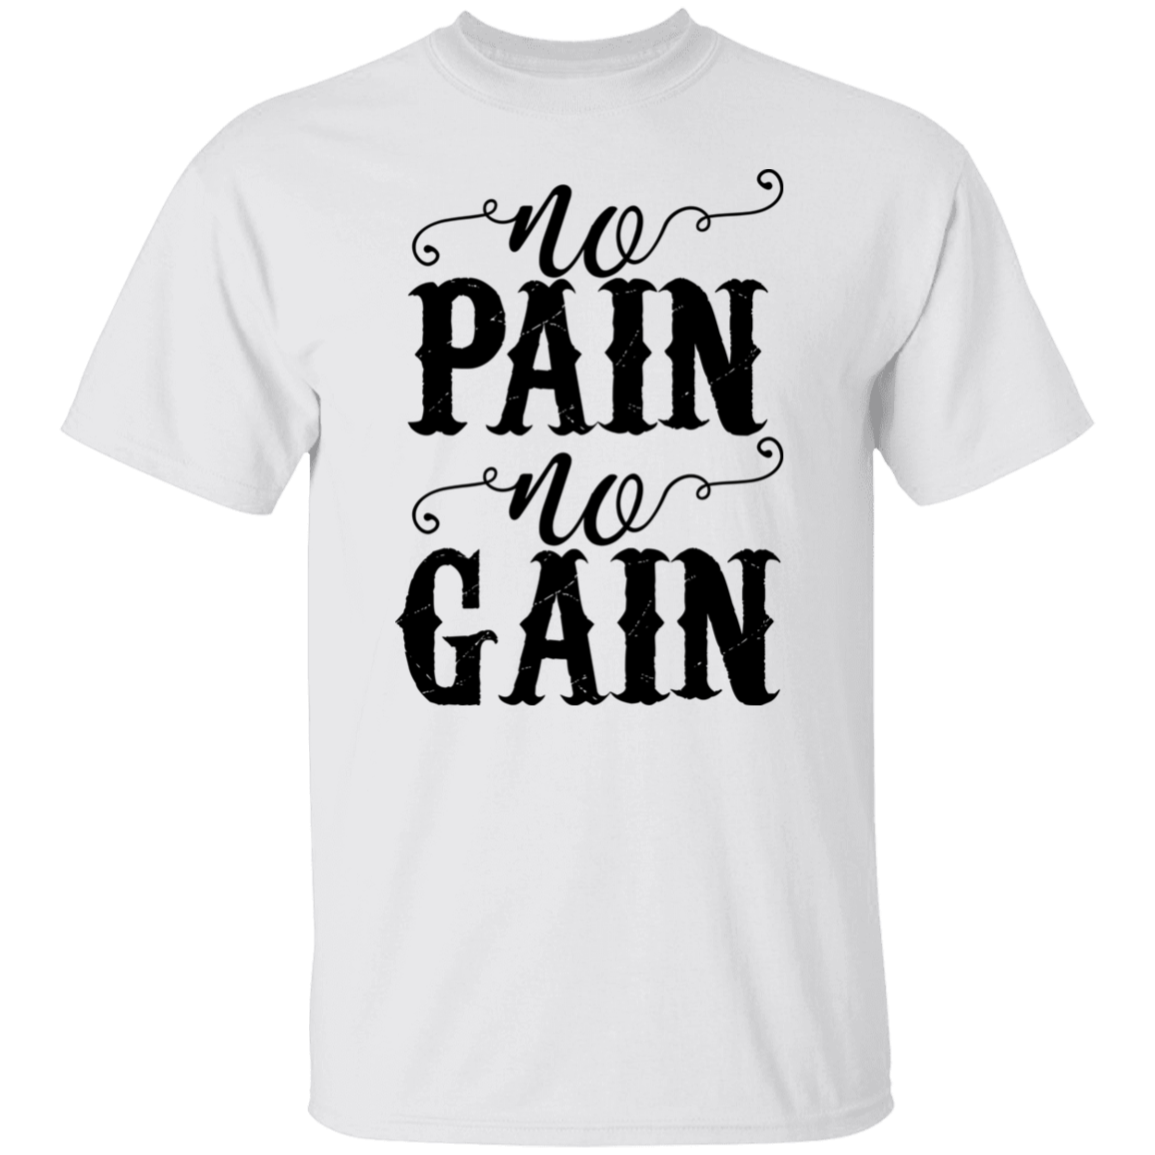 No Pain No Gain Shirt, Motivational T-Shirt, Workout Gifts, Exercise Shirt, Graphic Tee, Gifts for Him, Gifts for Her, Inspirational Tee